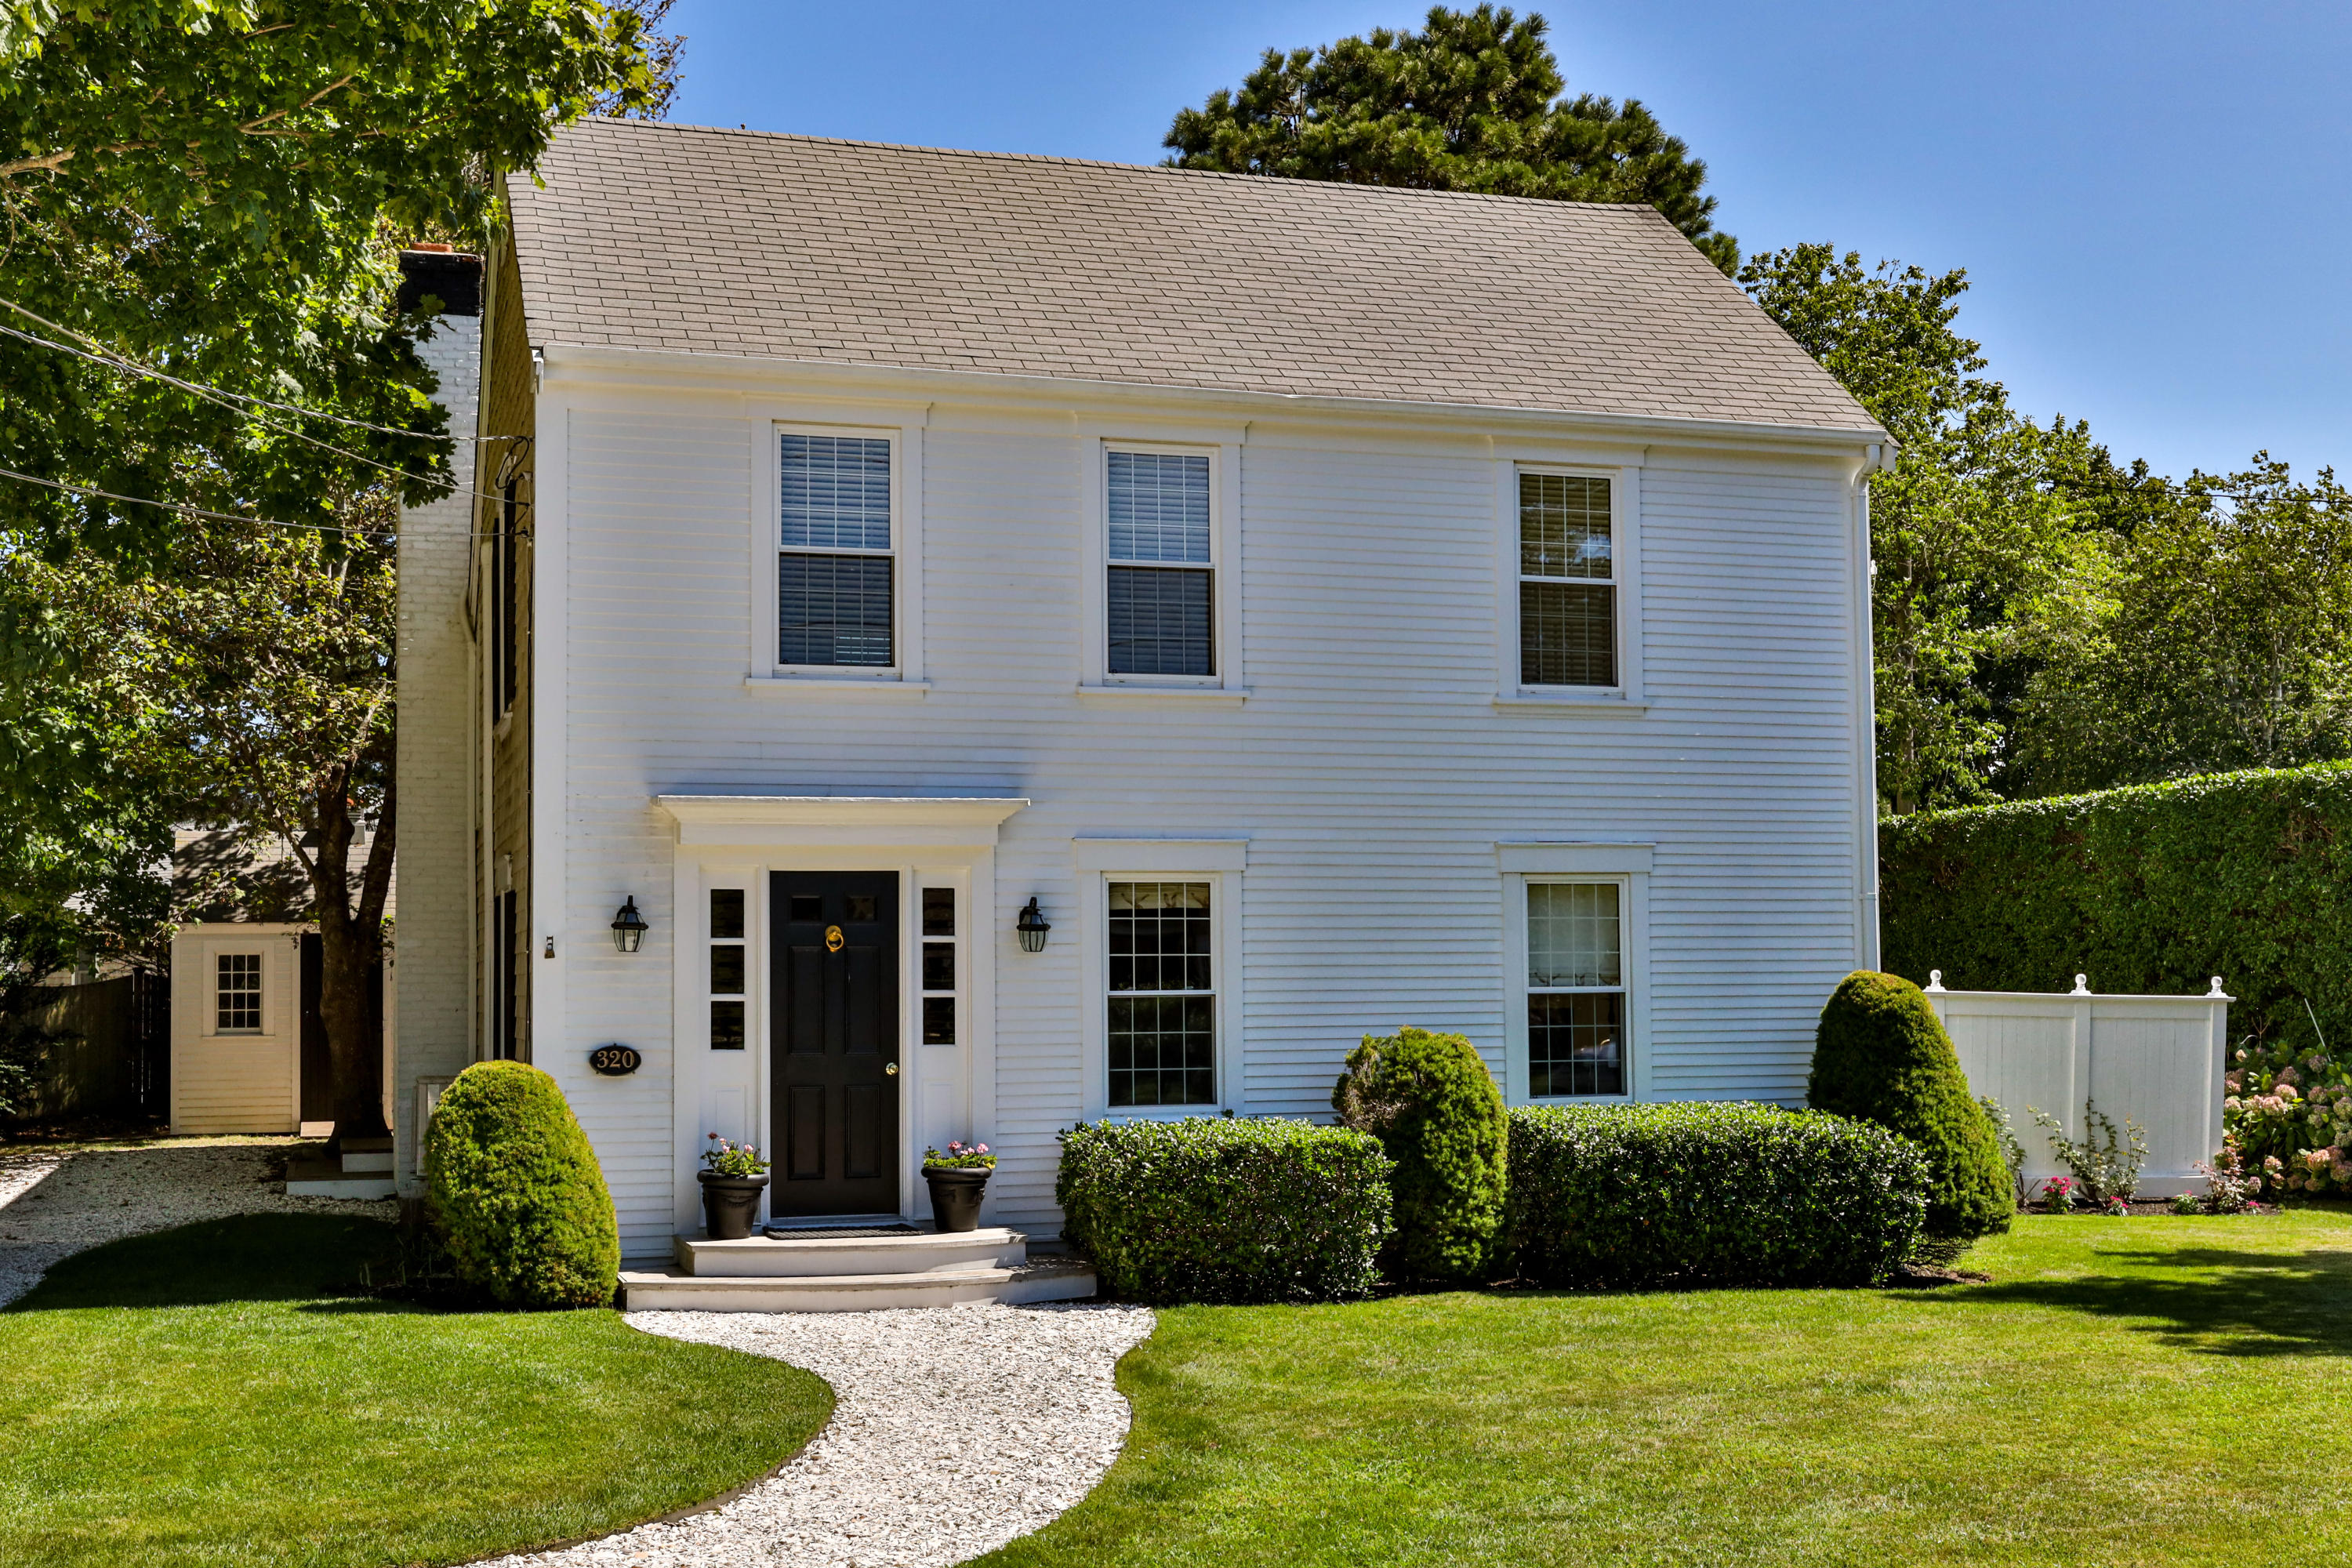 320 Old Harbor Road, Chatham, MA details